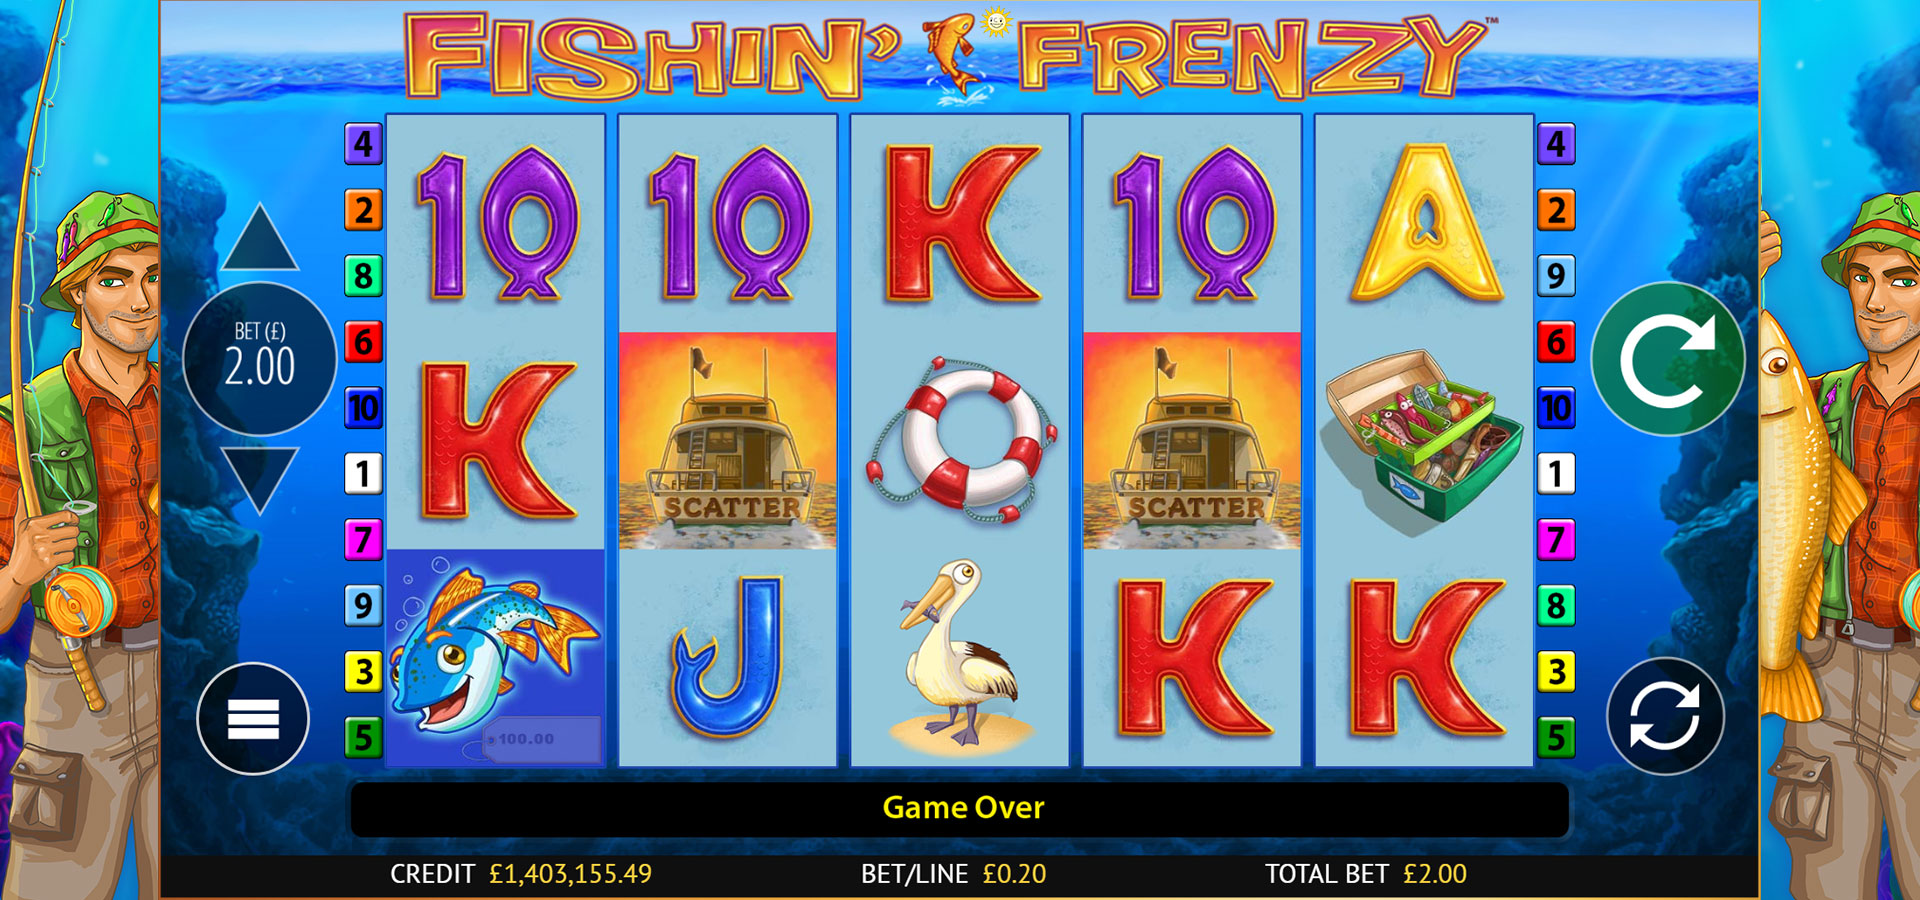 Fishing Frenzy Free Spins No Deposit